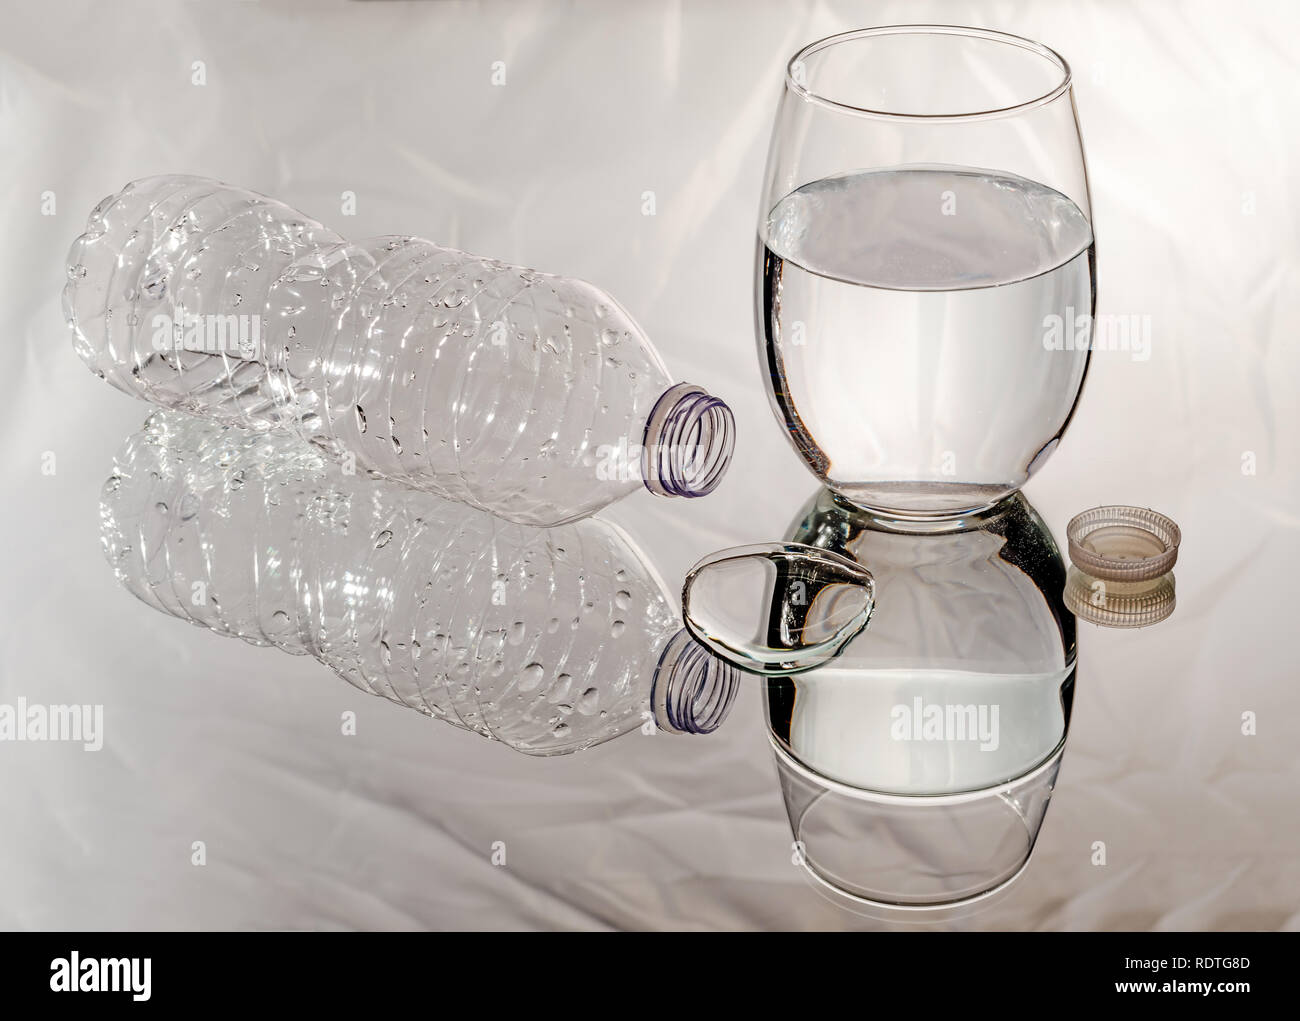 Spilled water bottle next to a glass of water and a puddle on a mirror with reflections. - Stock Image